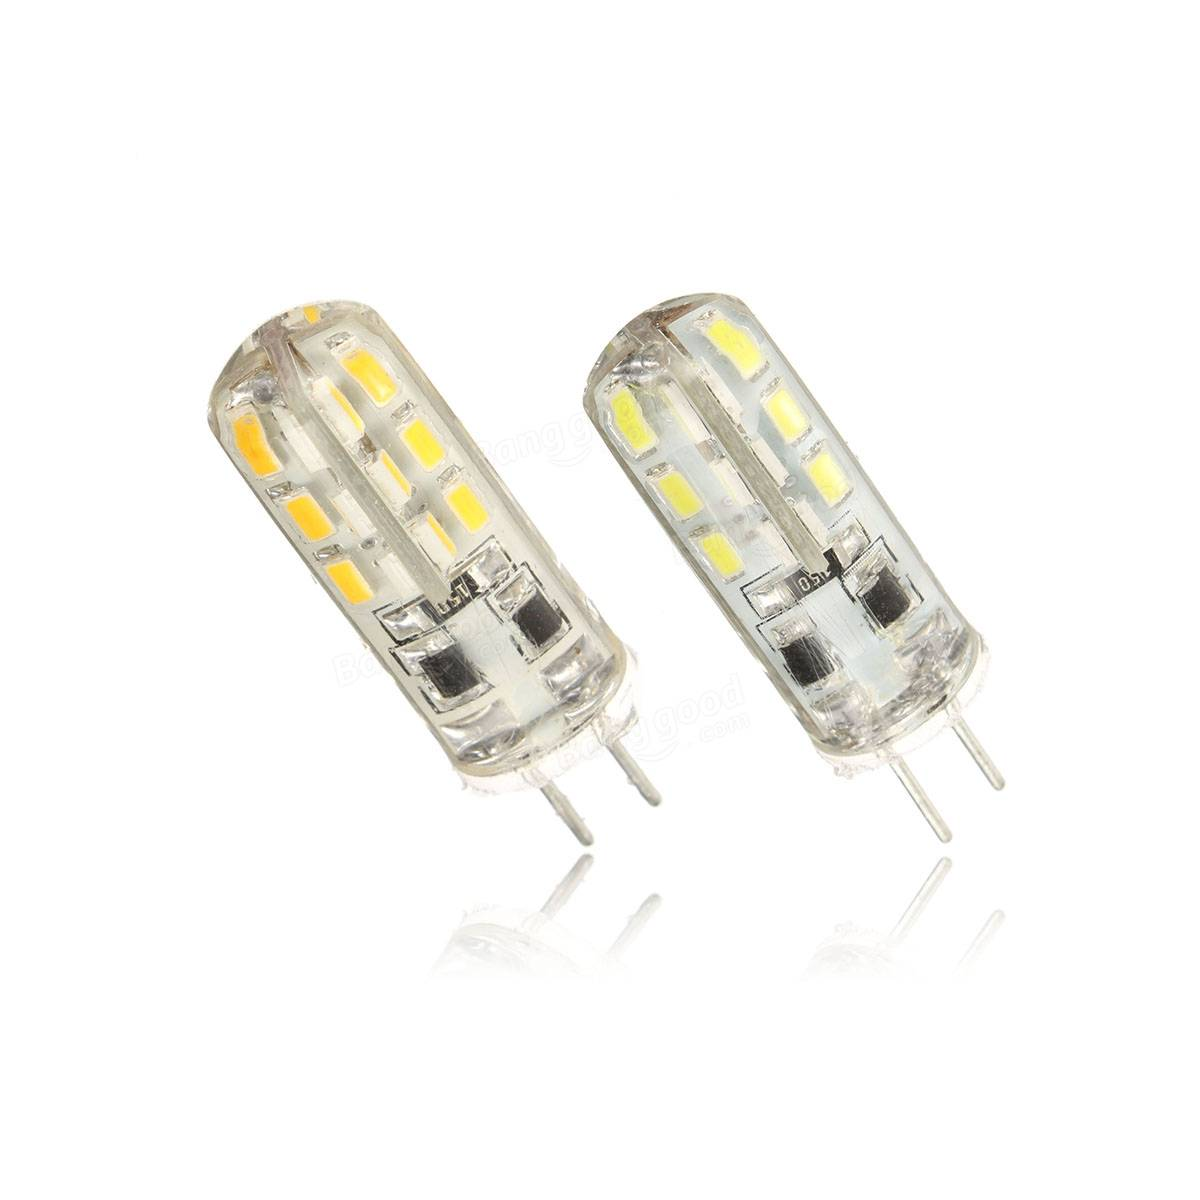 zx g4 1 5w 24 smd 3014 led silica cold white warm white. Black Bedroom Furniture Sets. Home Design Ideas